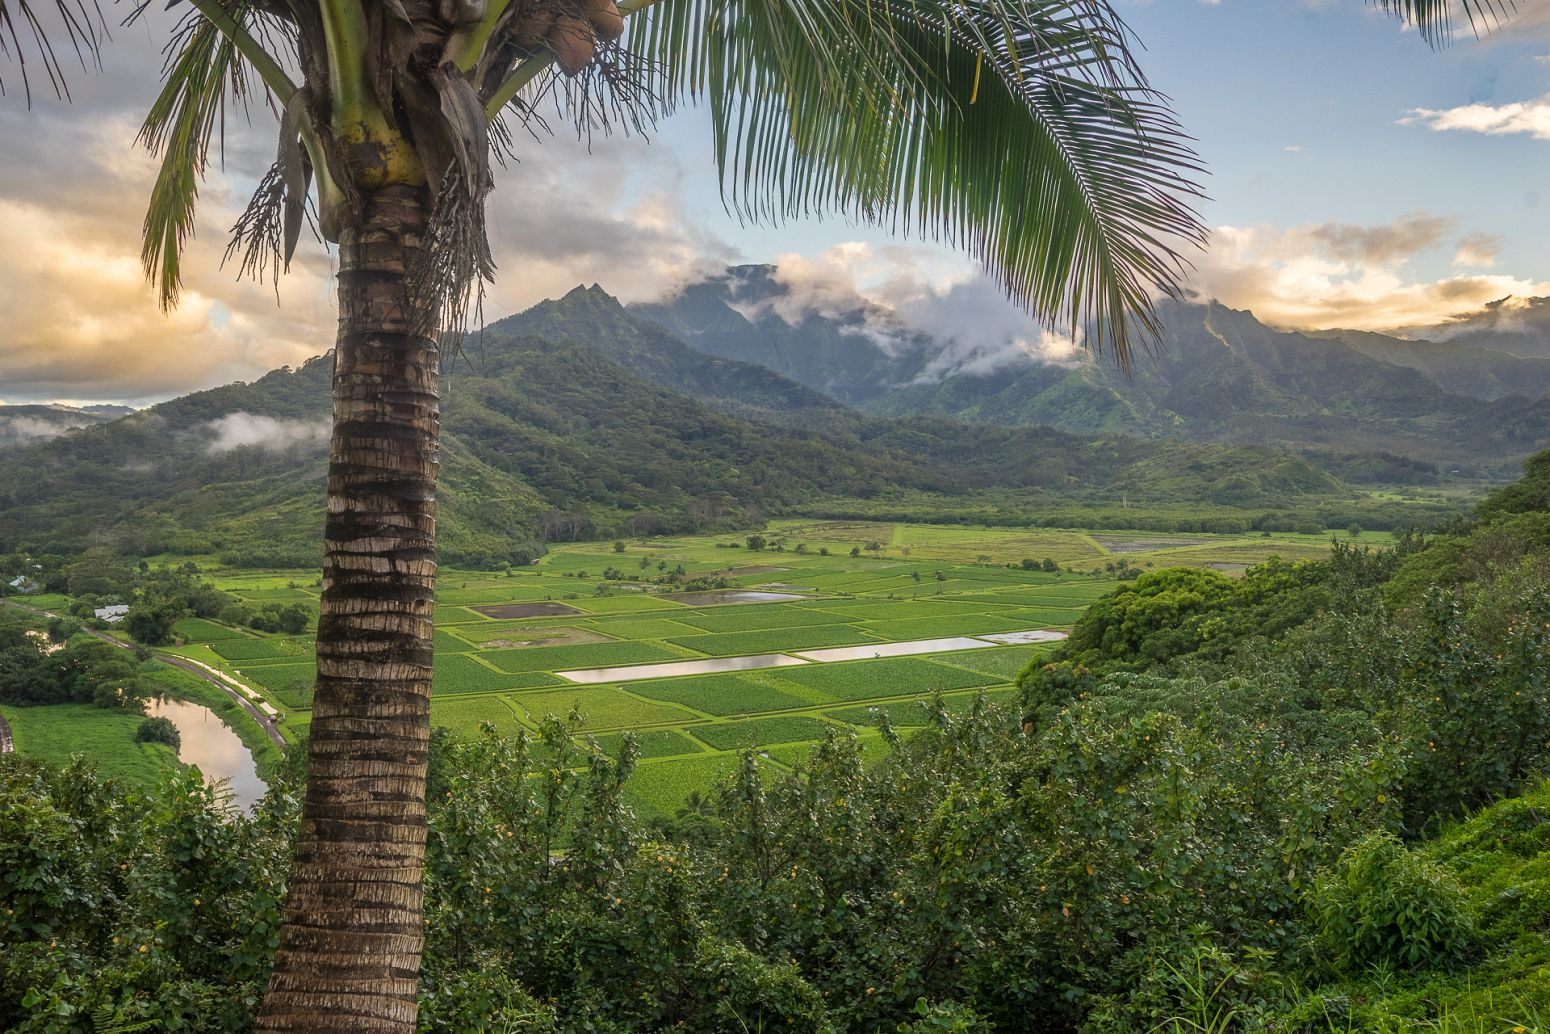 Hanalei Valley, Hawaii, USA